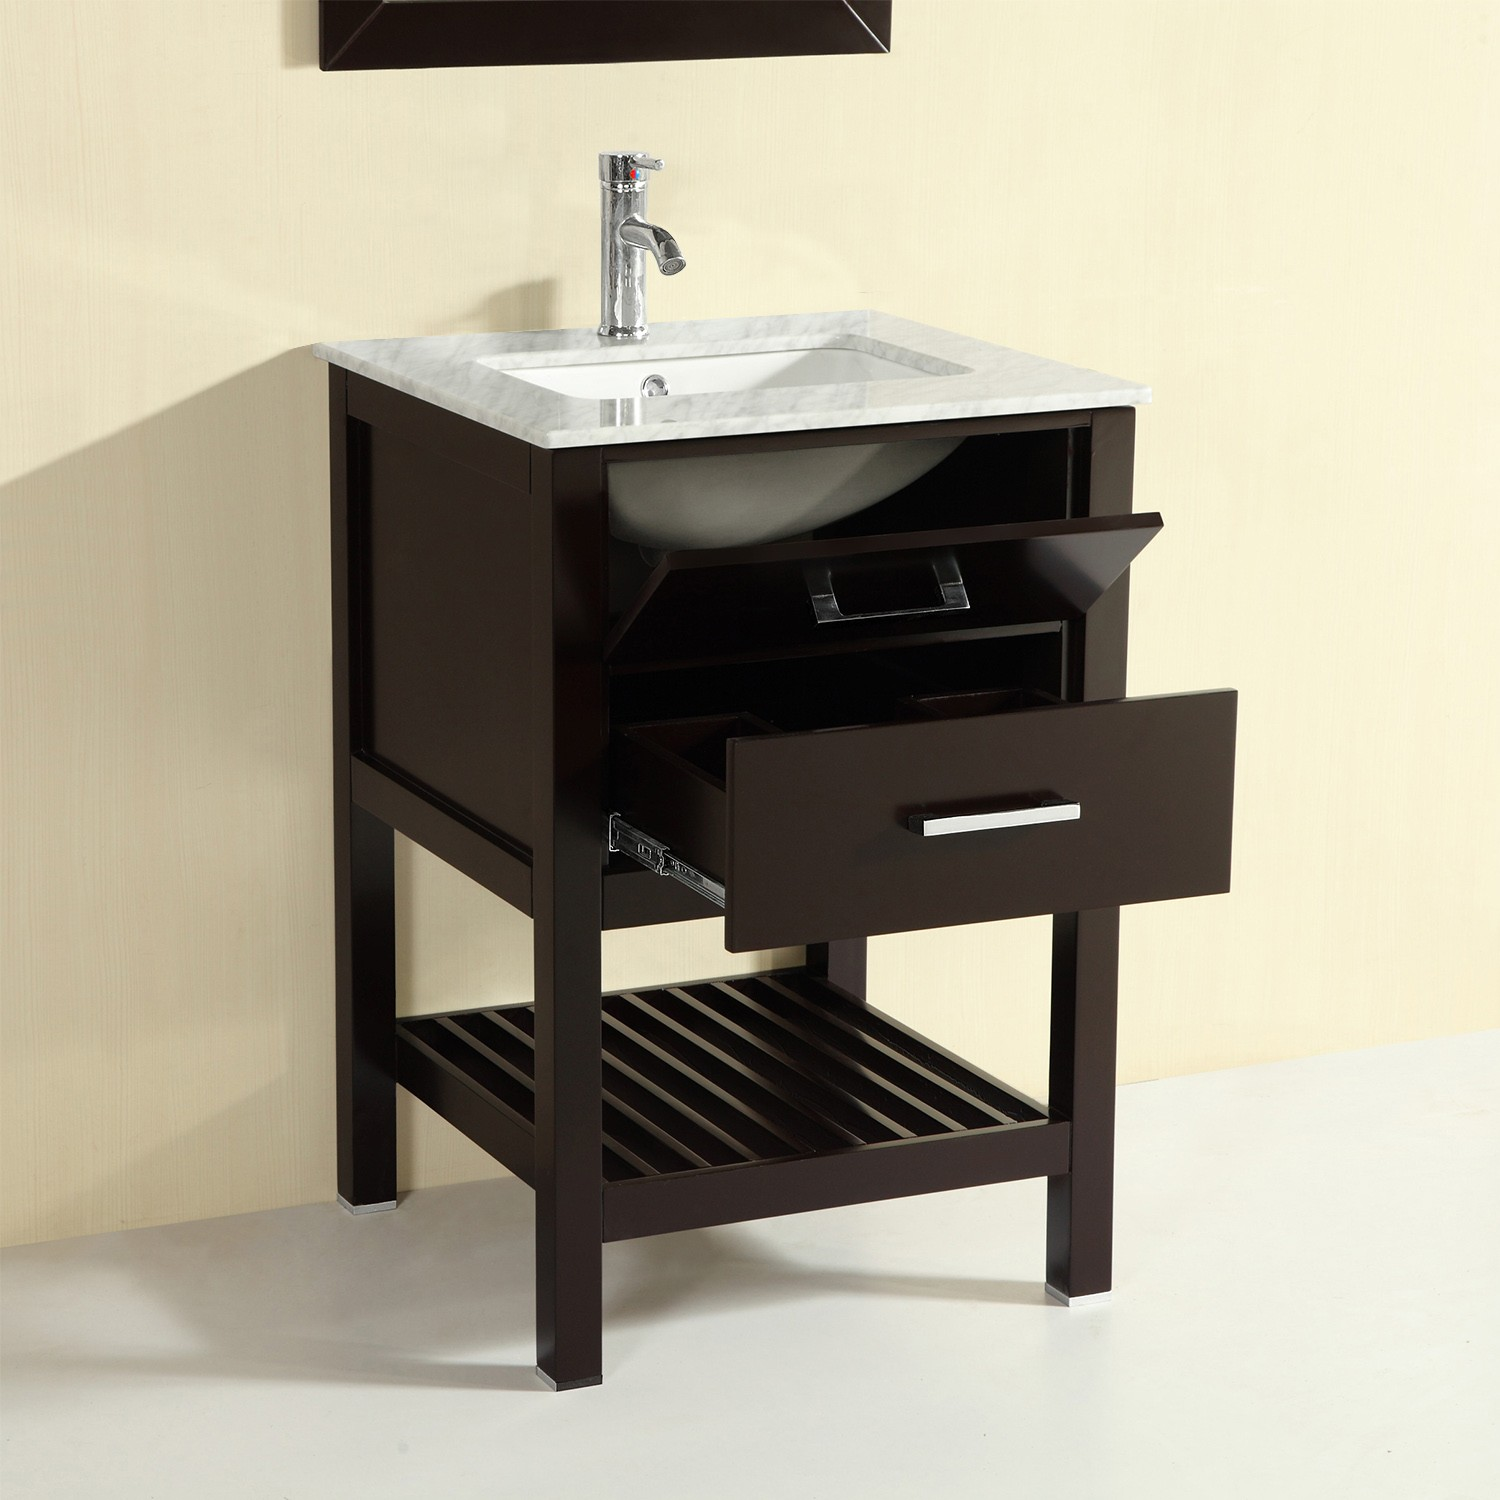 Eviva Natalie F 24 Espresso Bathroom Vanity With White Jazz Marble Counter Top White Undermount Porcelain Sink Decors Us